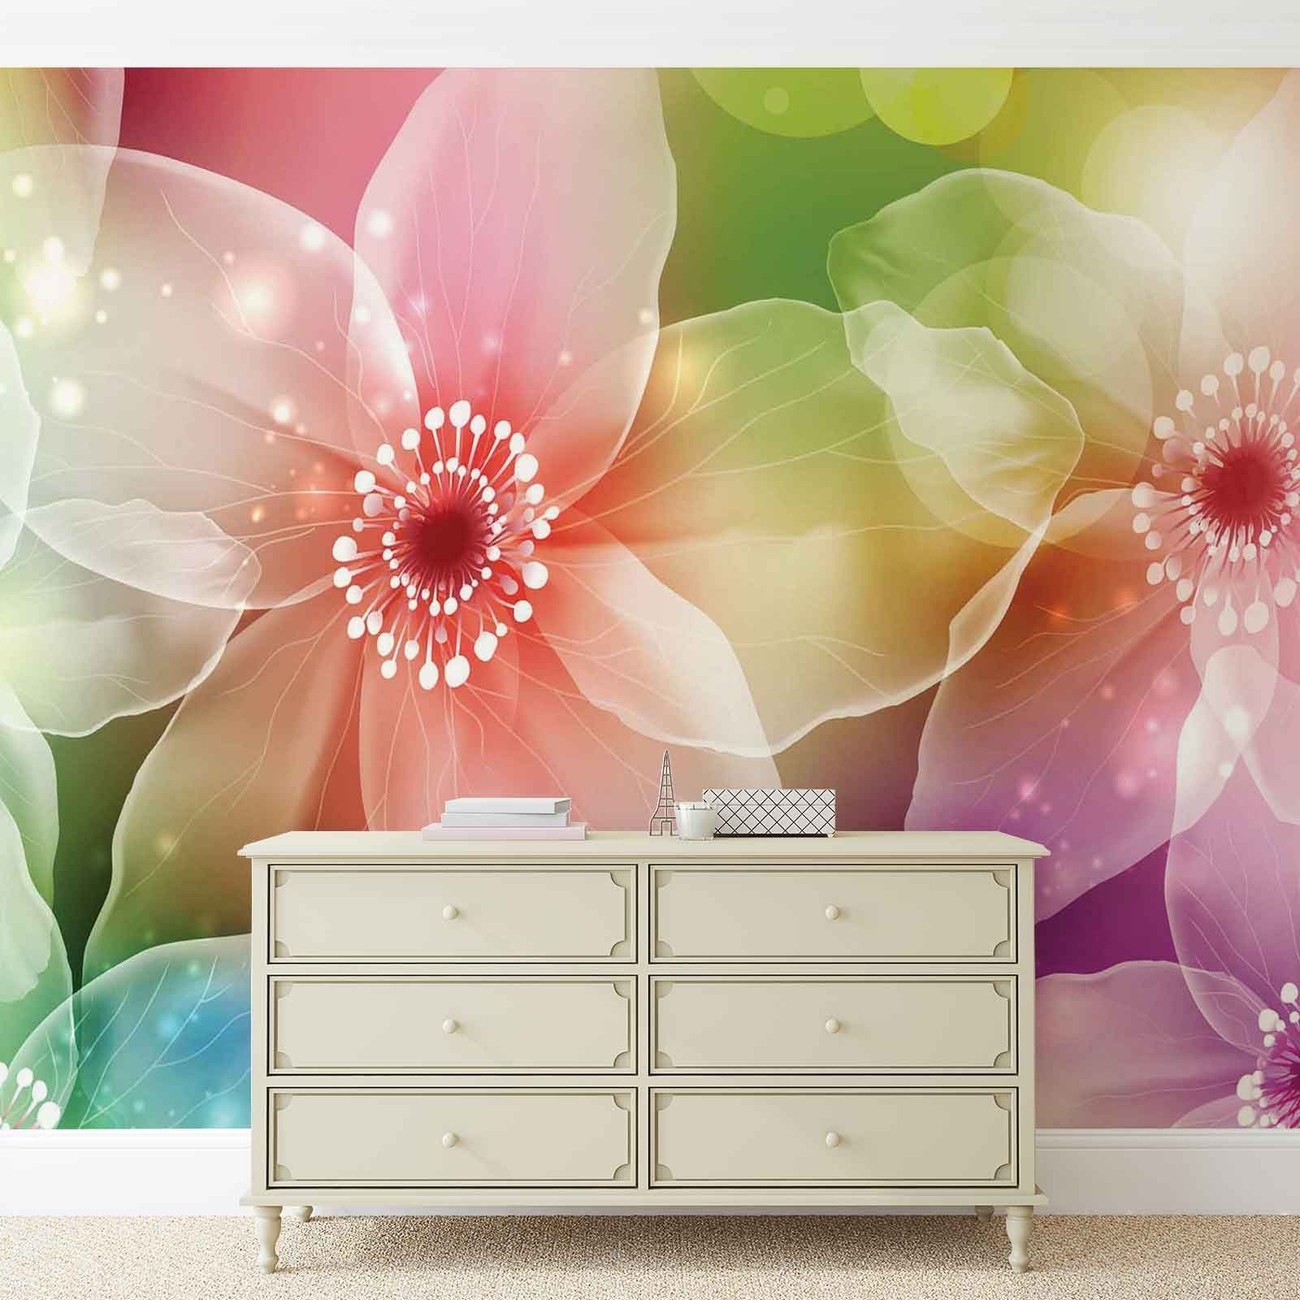 Flowers art wall paper mural buy at europosters for Mural of flowers